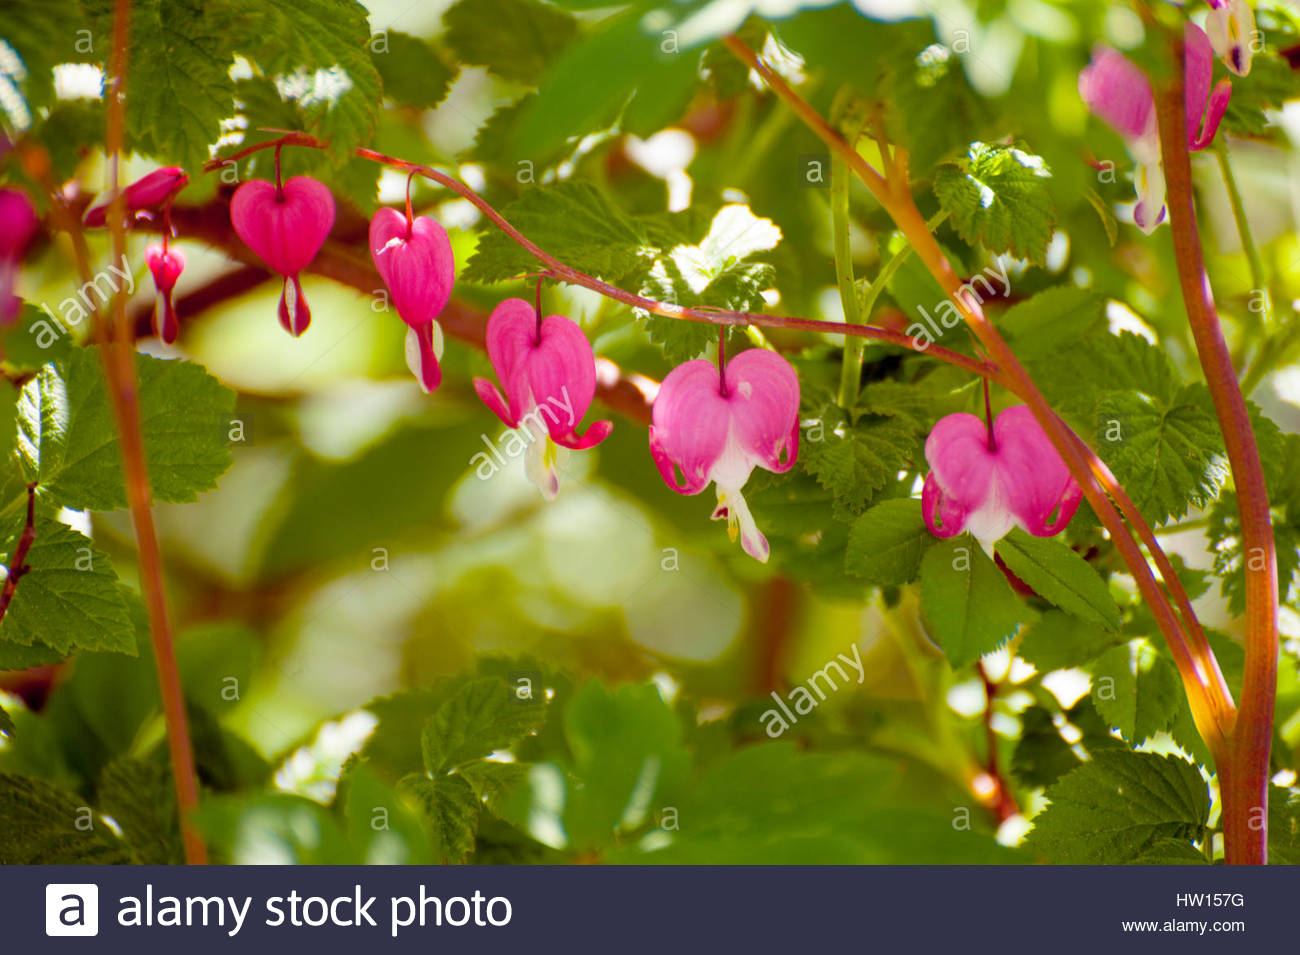 Romantic and dreamy midsummer in Sweden, oldfashioned flower called Bleeding-heart or Asian bleeding-heart. - Stock Image